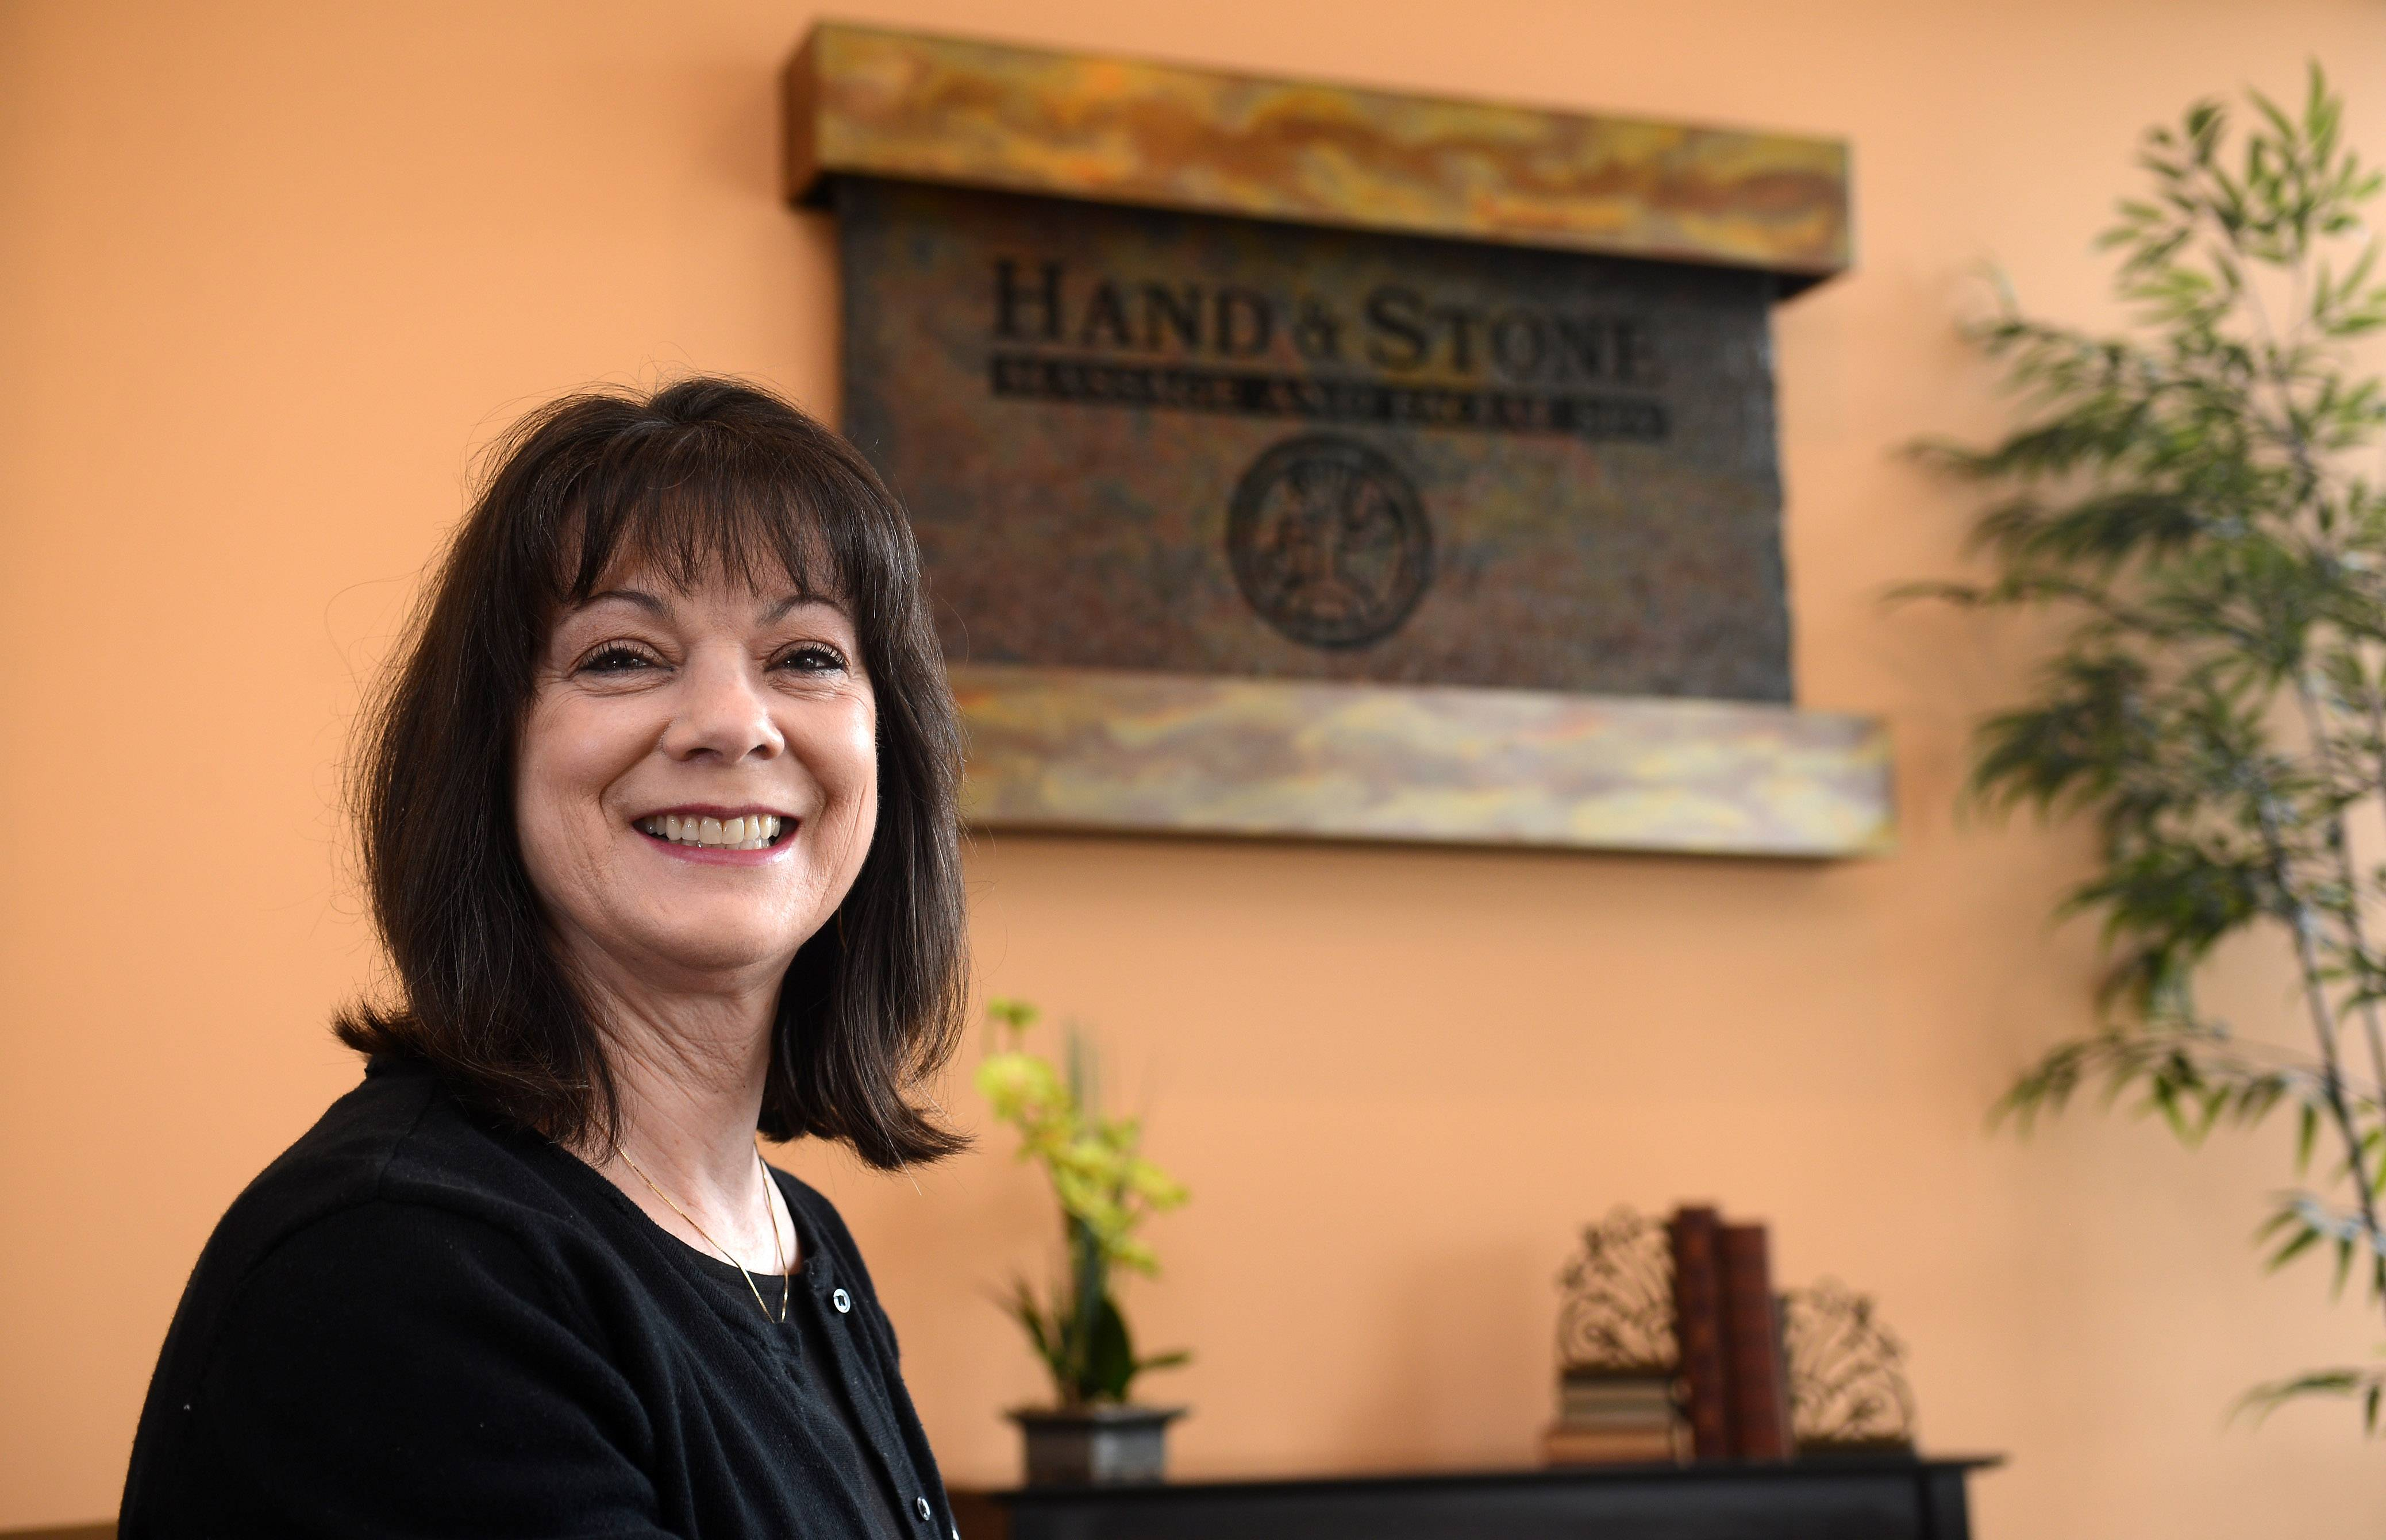 Kathy Hendershott is the owner of Hand & Stone Massage and Facial Spa in Geneva. She also owns a Hand & Stone in Wheaton, and hopes to open one in Naperville.